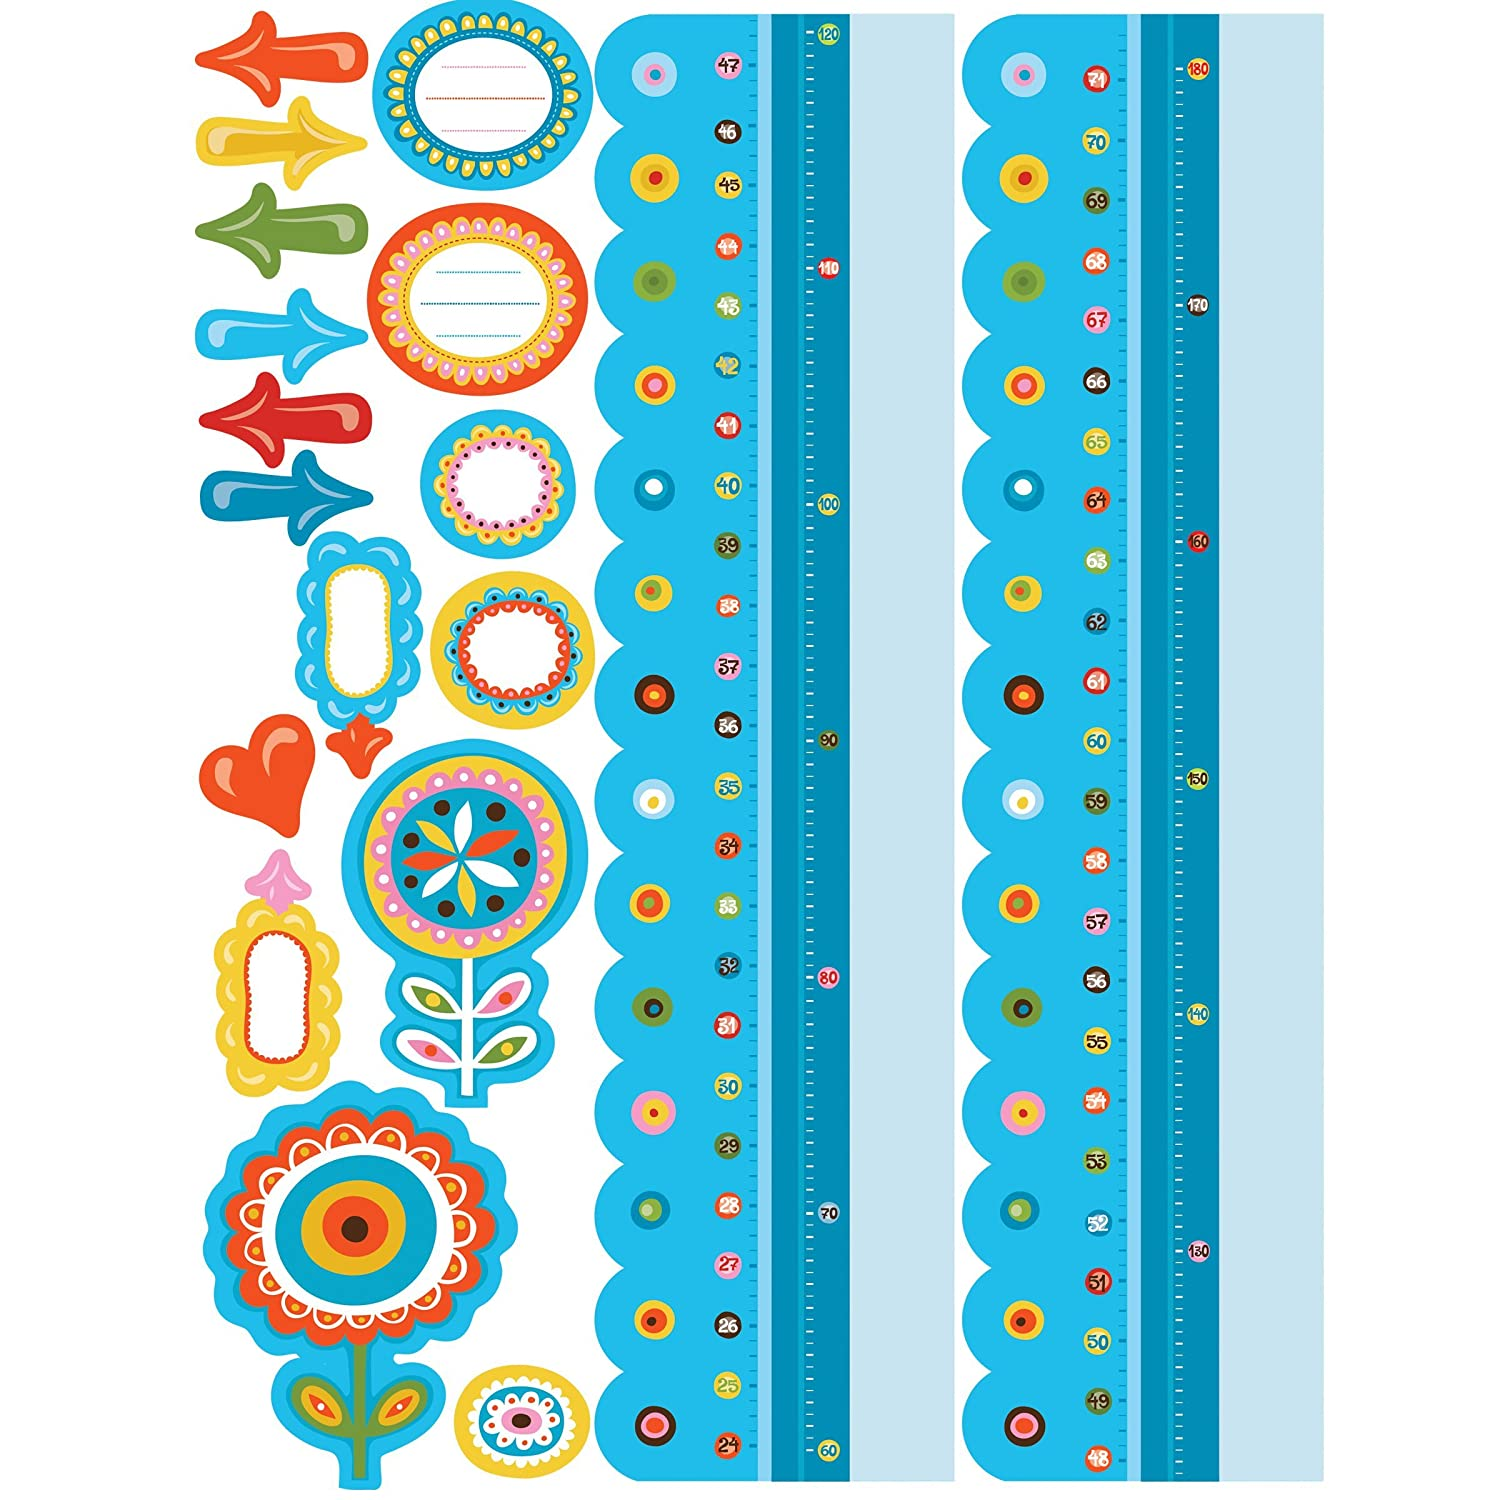 Reusable Blue Dry Erase Growth Chart Sticker Wallies Wall Decals 6-inch x 49-inch 13541